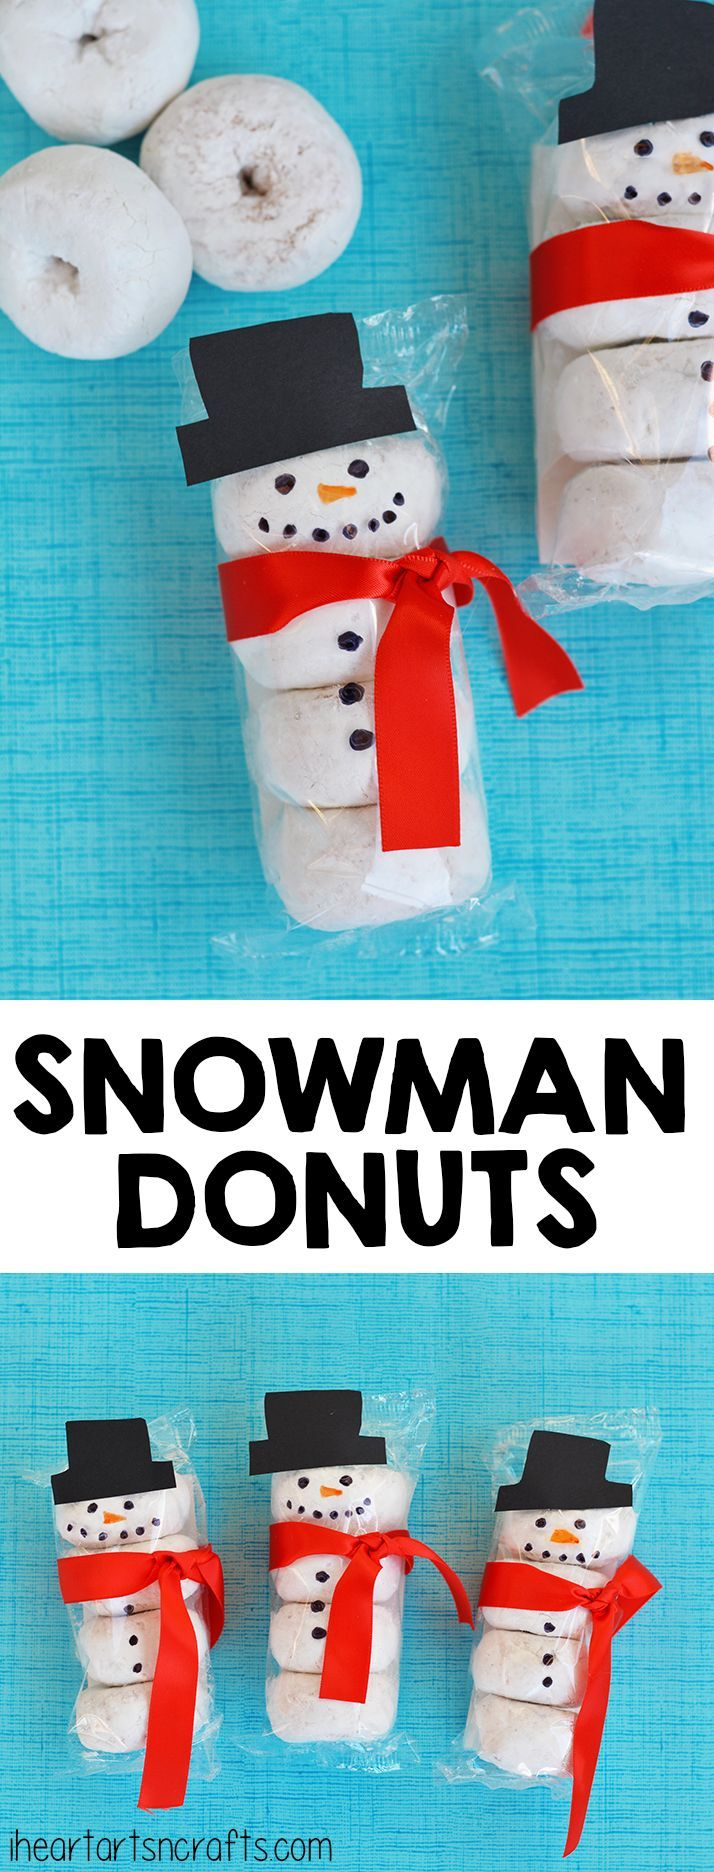 Snowman Donuts What A Cute Idea For A Classroom Snack Or Fun Treat For The Kids